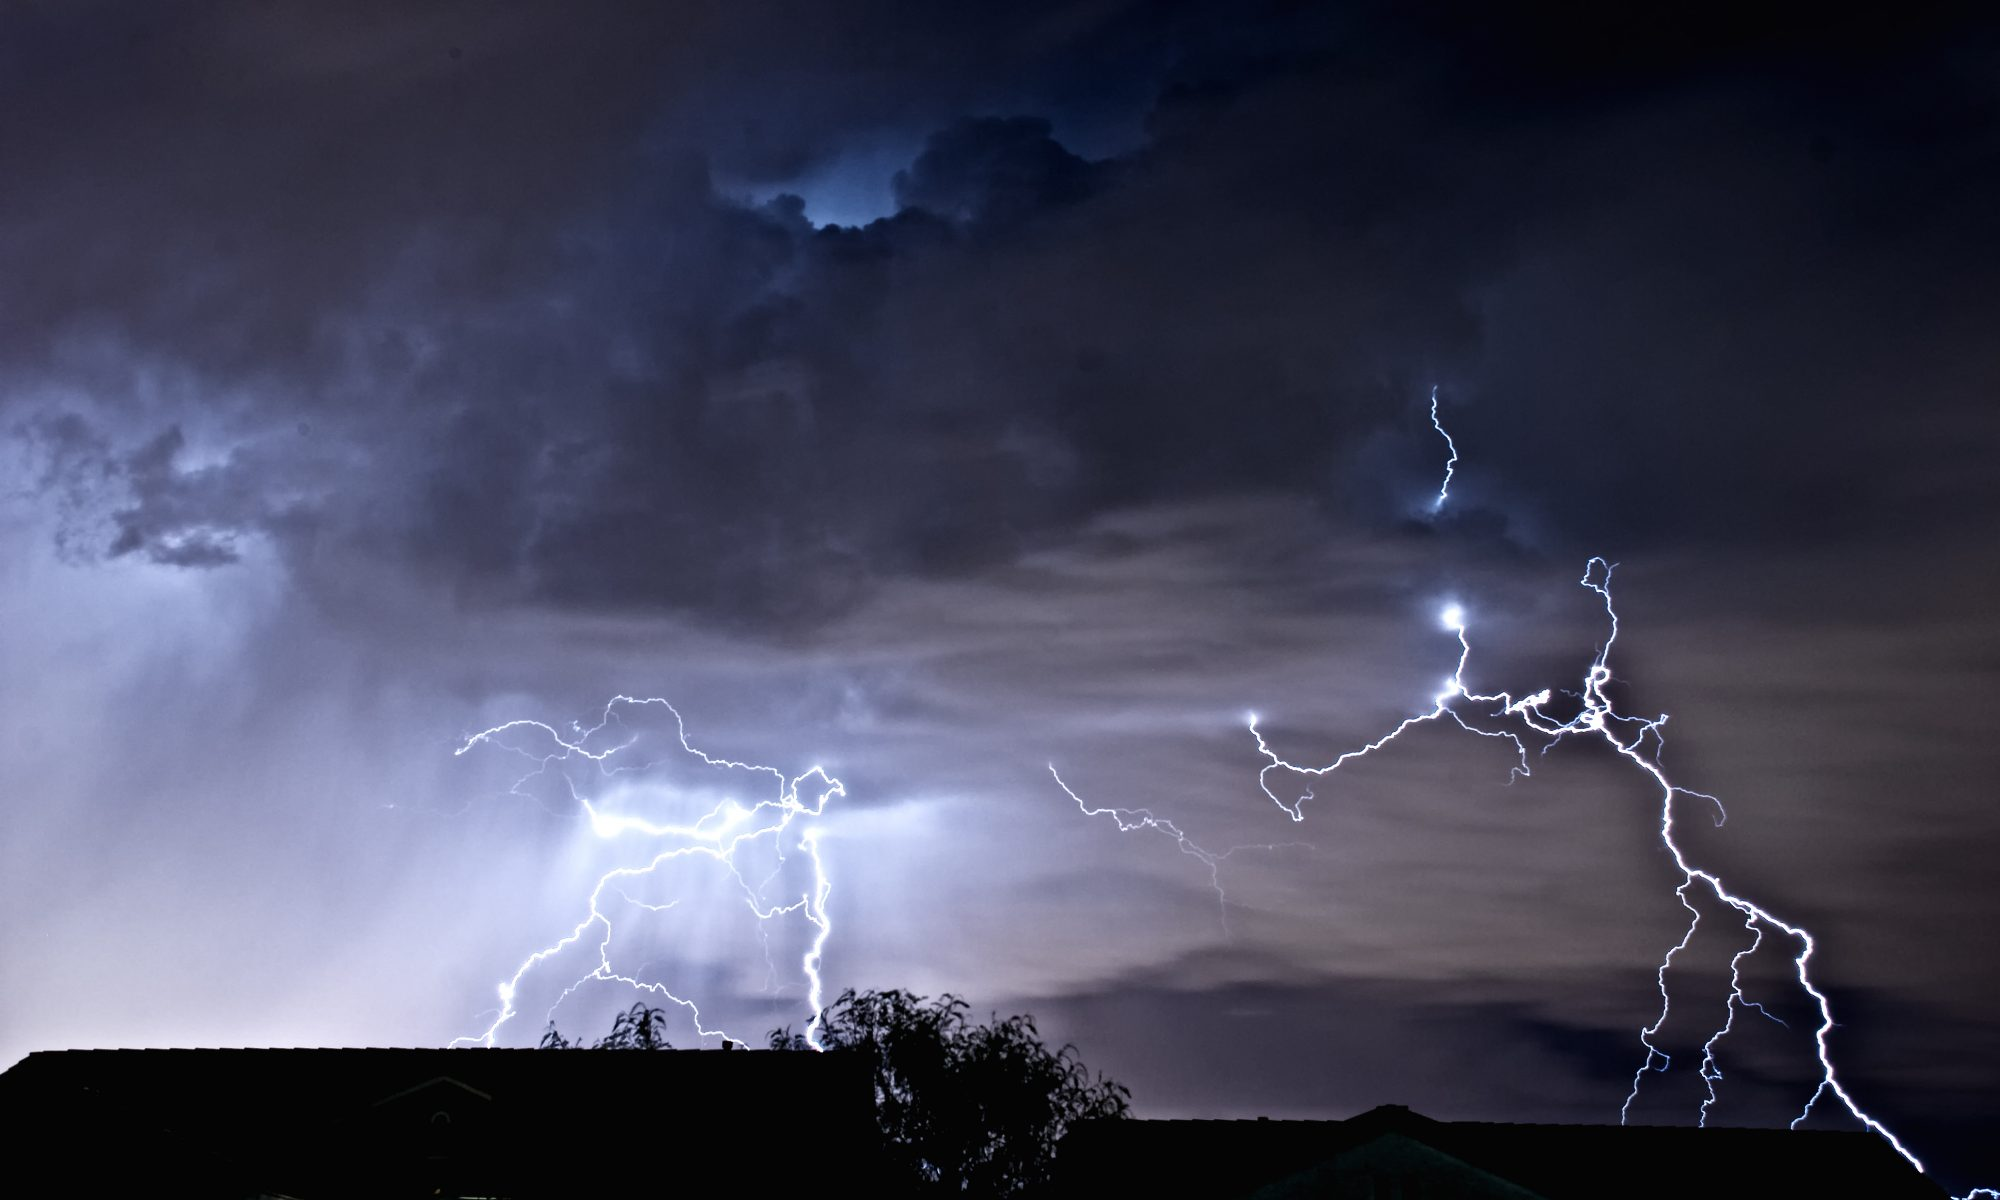 amped-up-By Thomas Dwyer from Henderson (Las Vegas), Nevada, USA (Las Vegas Lightning Storm) [CC BY 2.0 (https://creativecommons.org/licenses/by/2.0)], via Wikimedia Commons